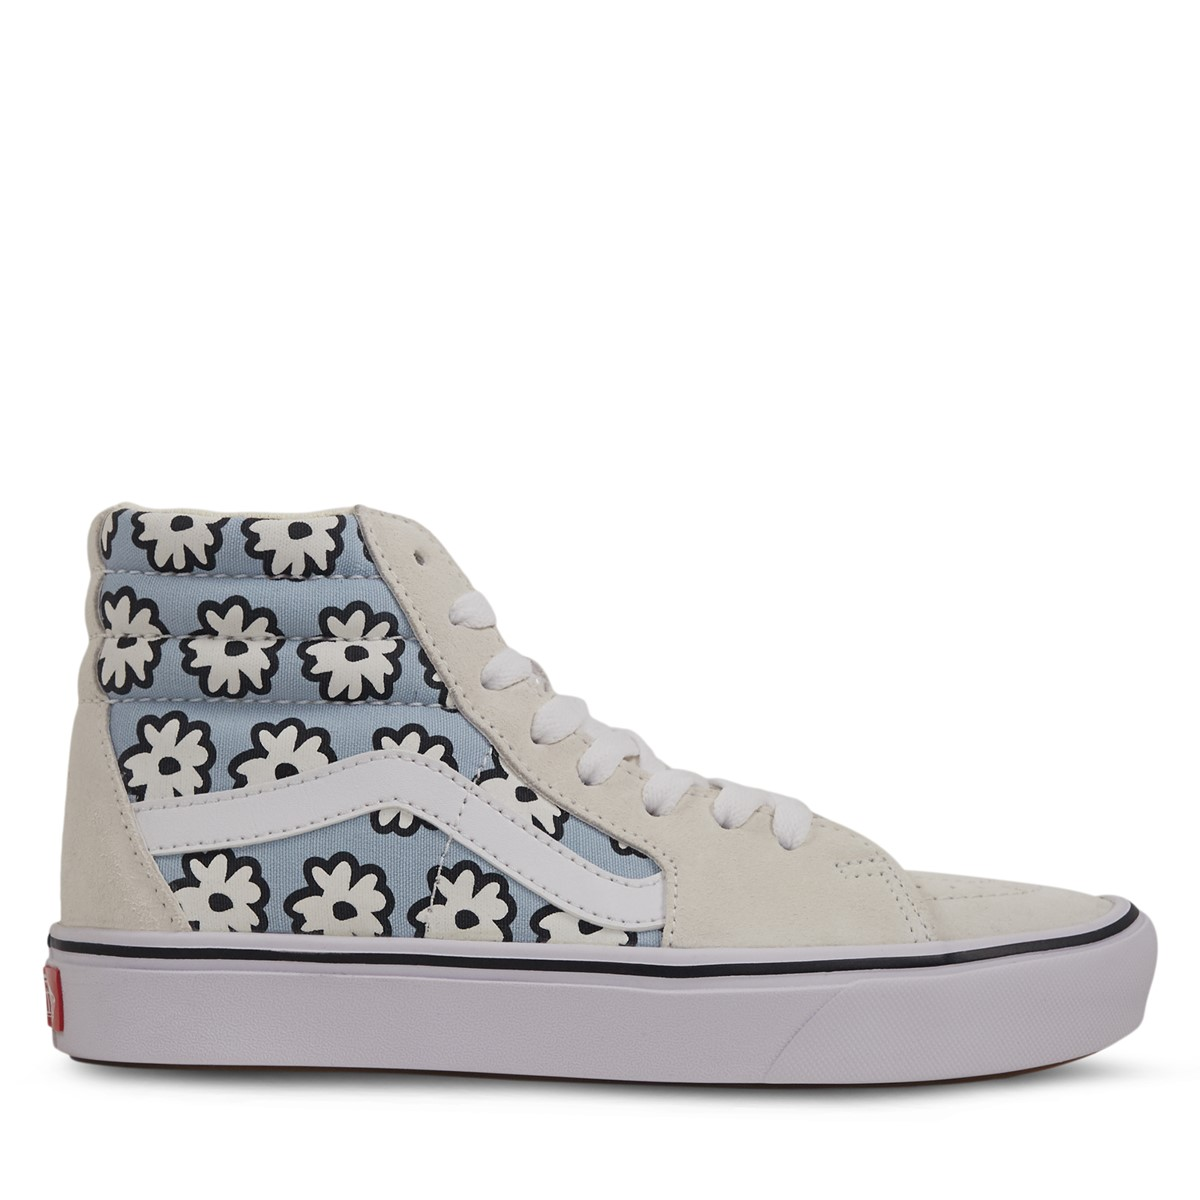 ComfyCush Sk8-Hi Mixed Cozy Floral Sneakers in Off-White/Pastel